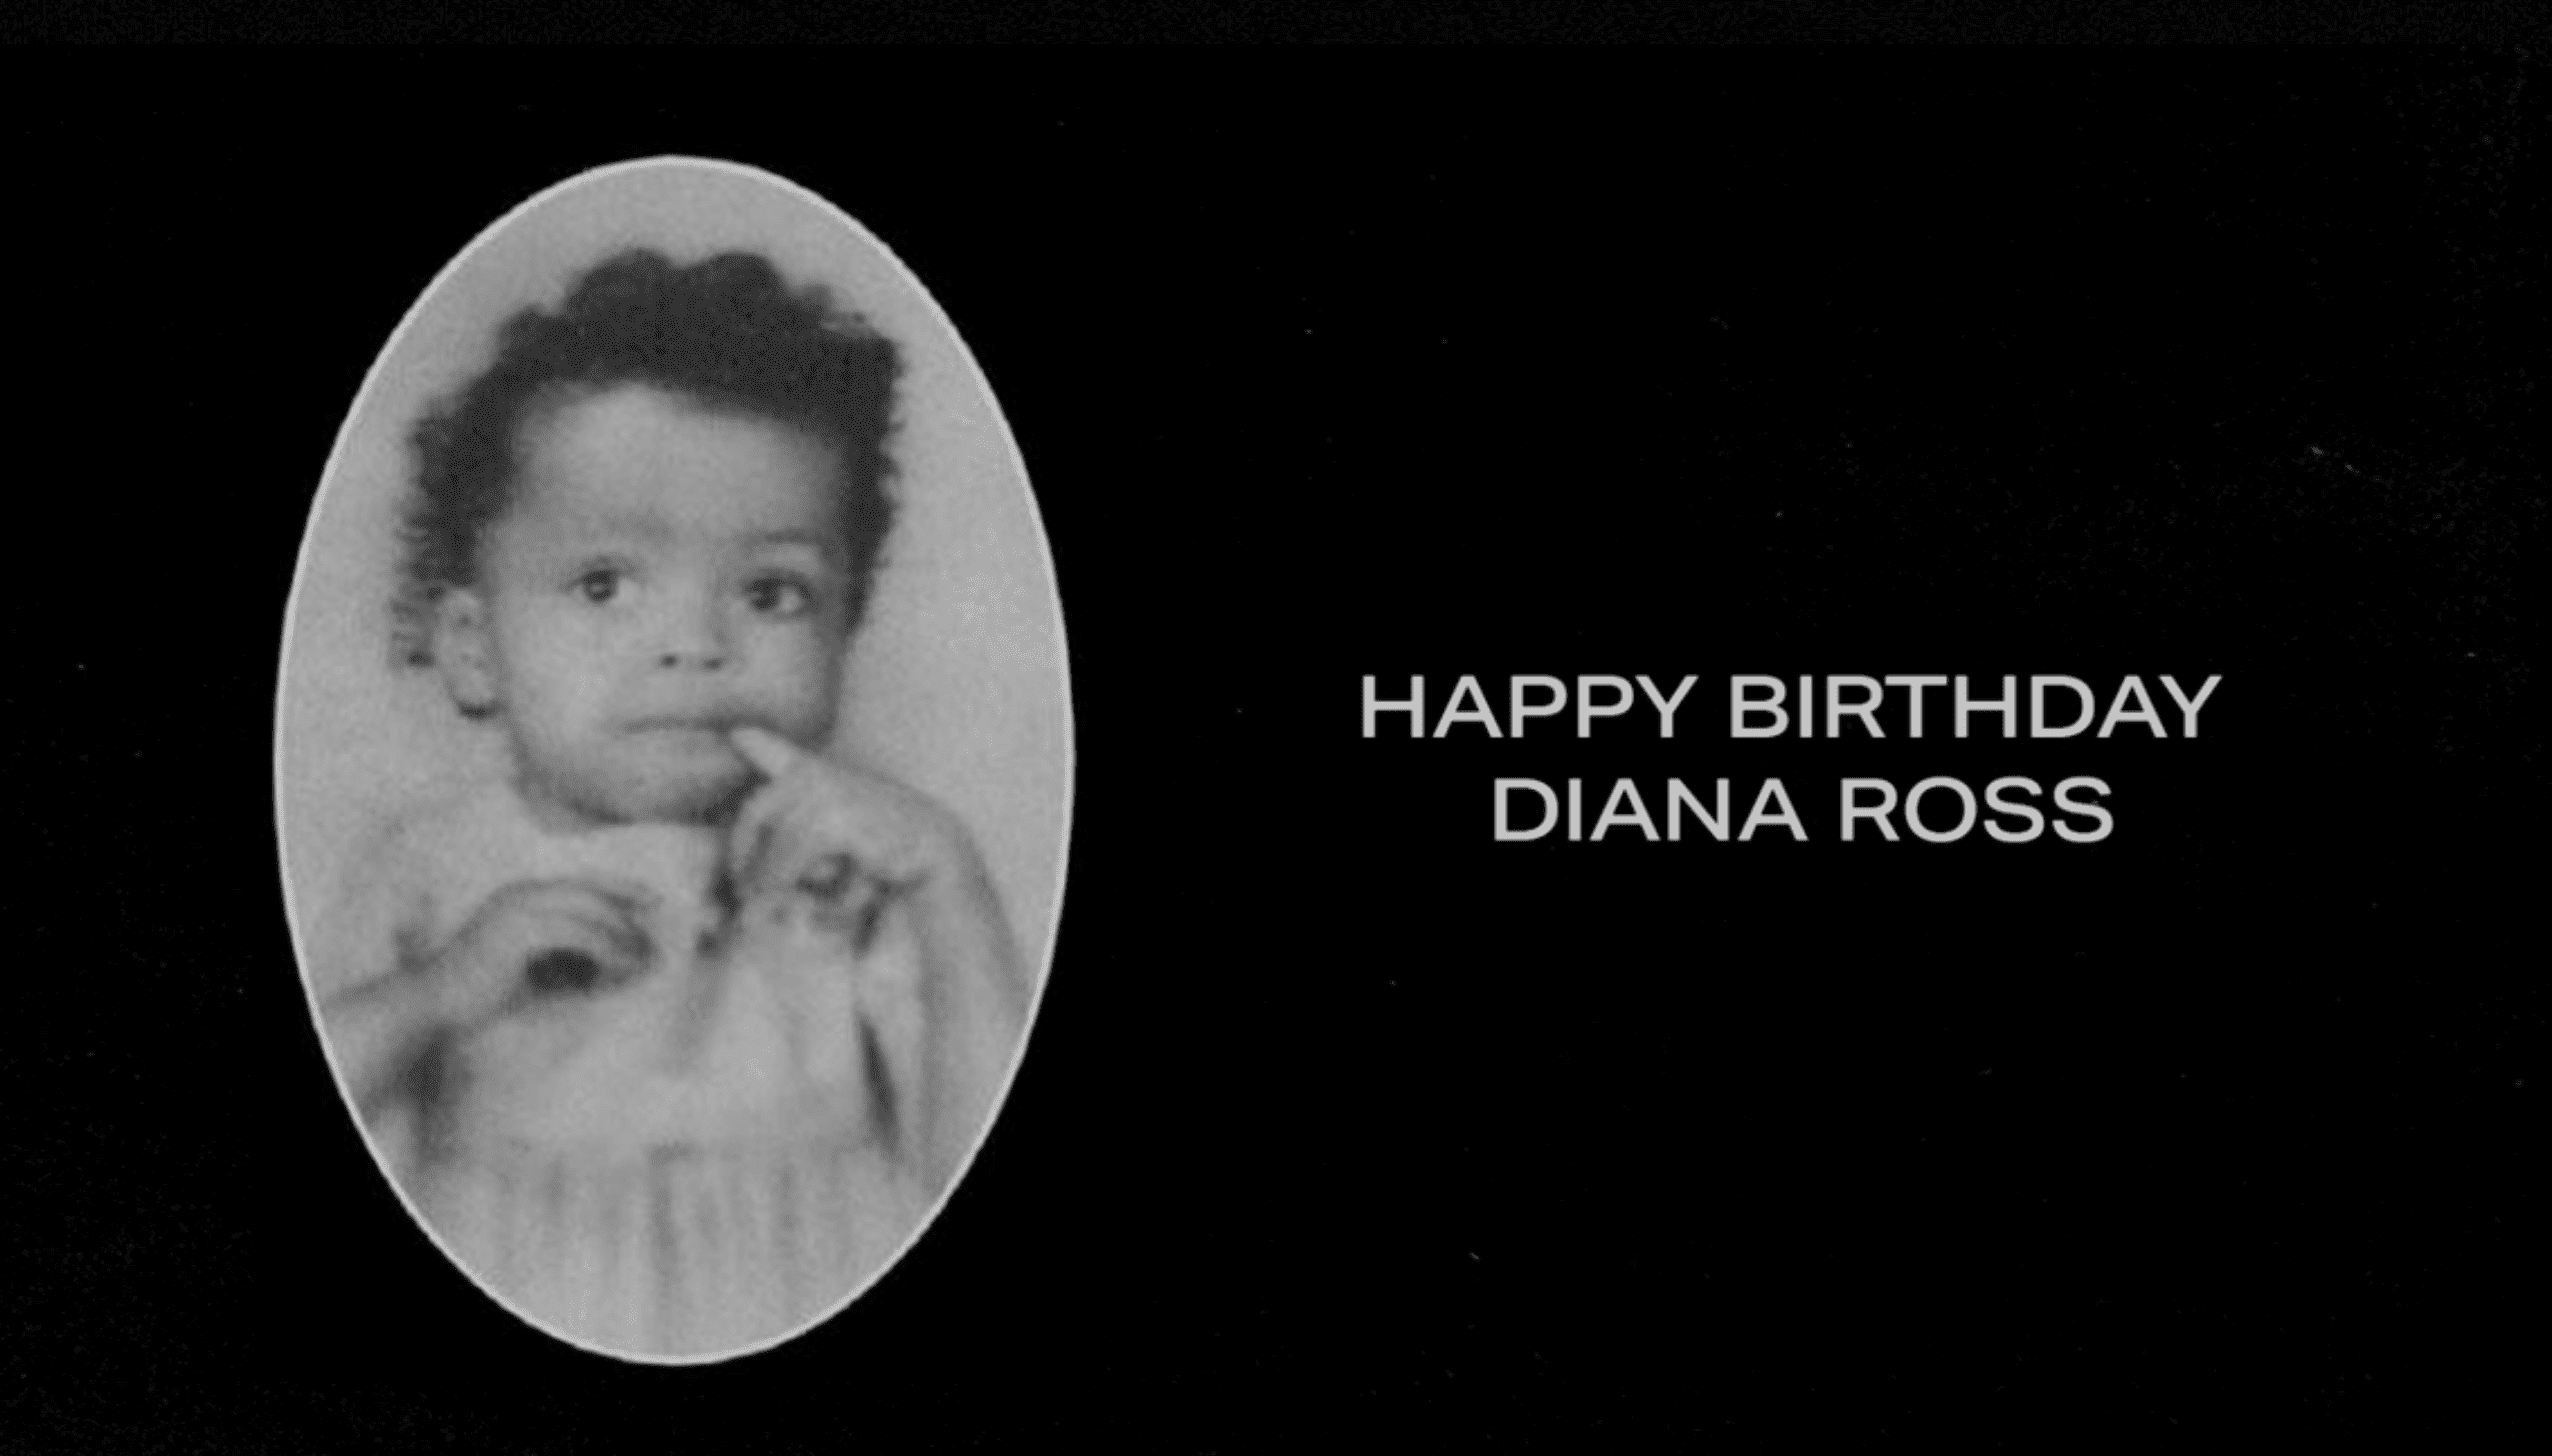 Diana Ross as a baby. | Source: beyonce.com